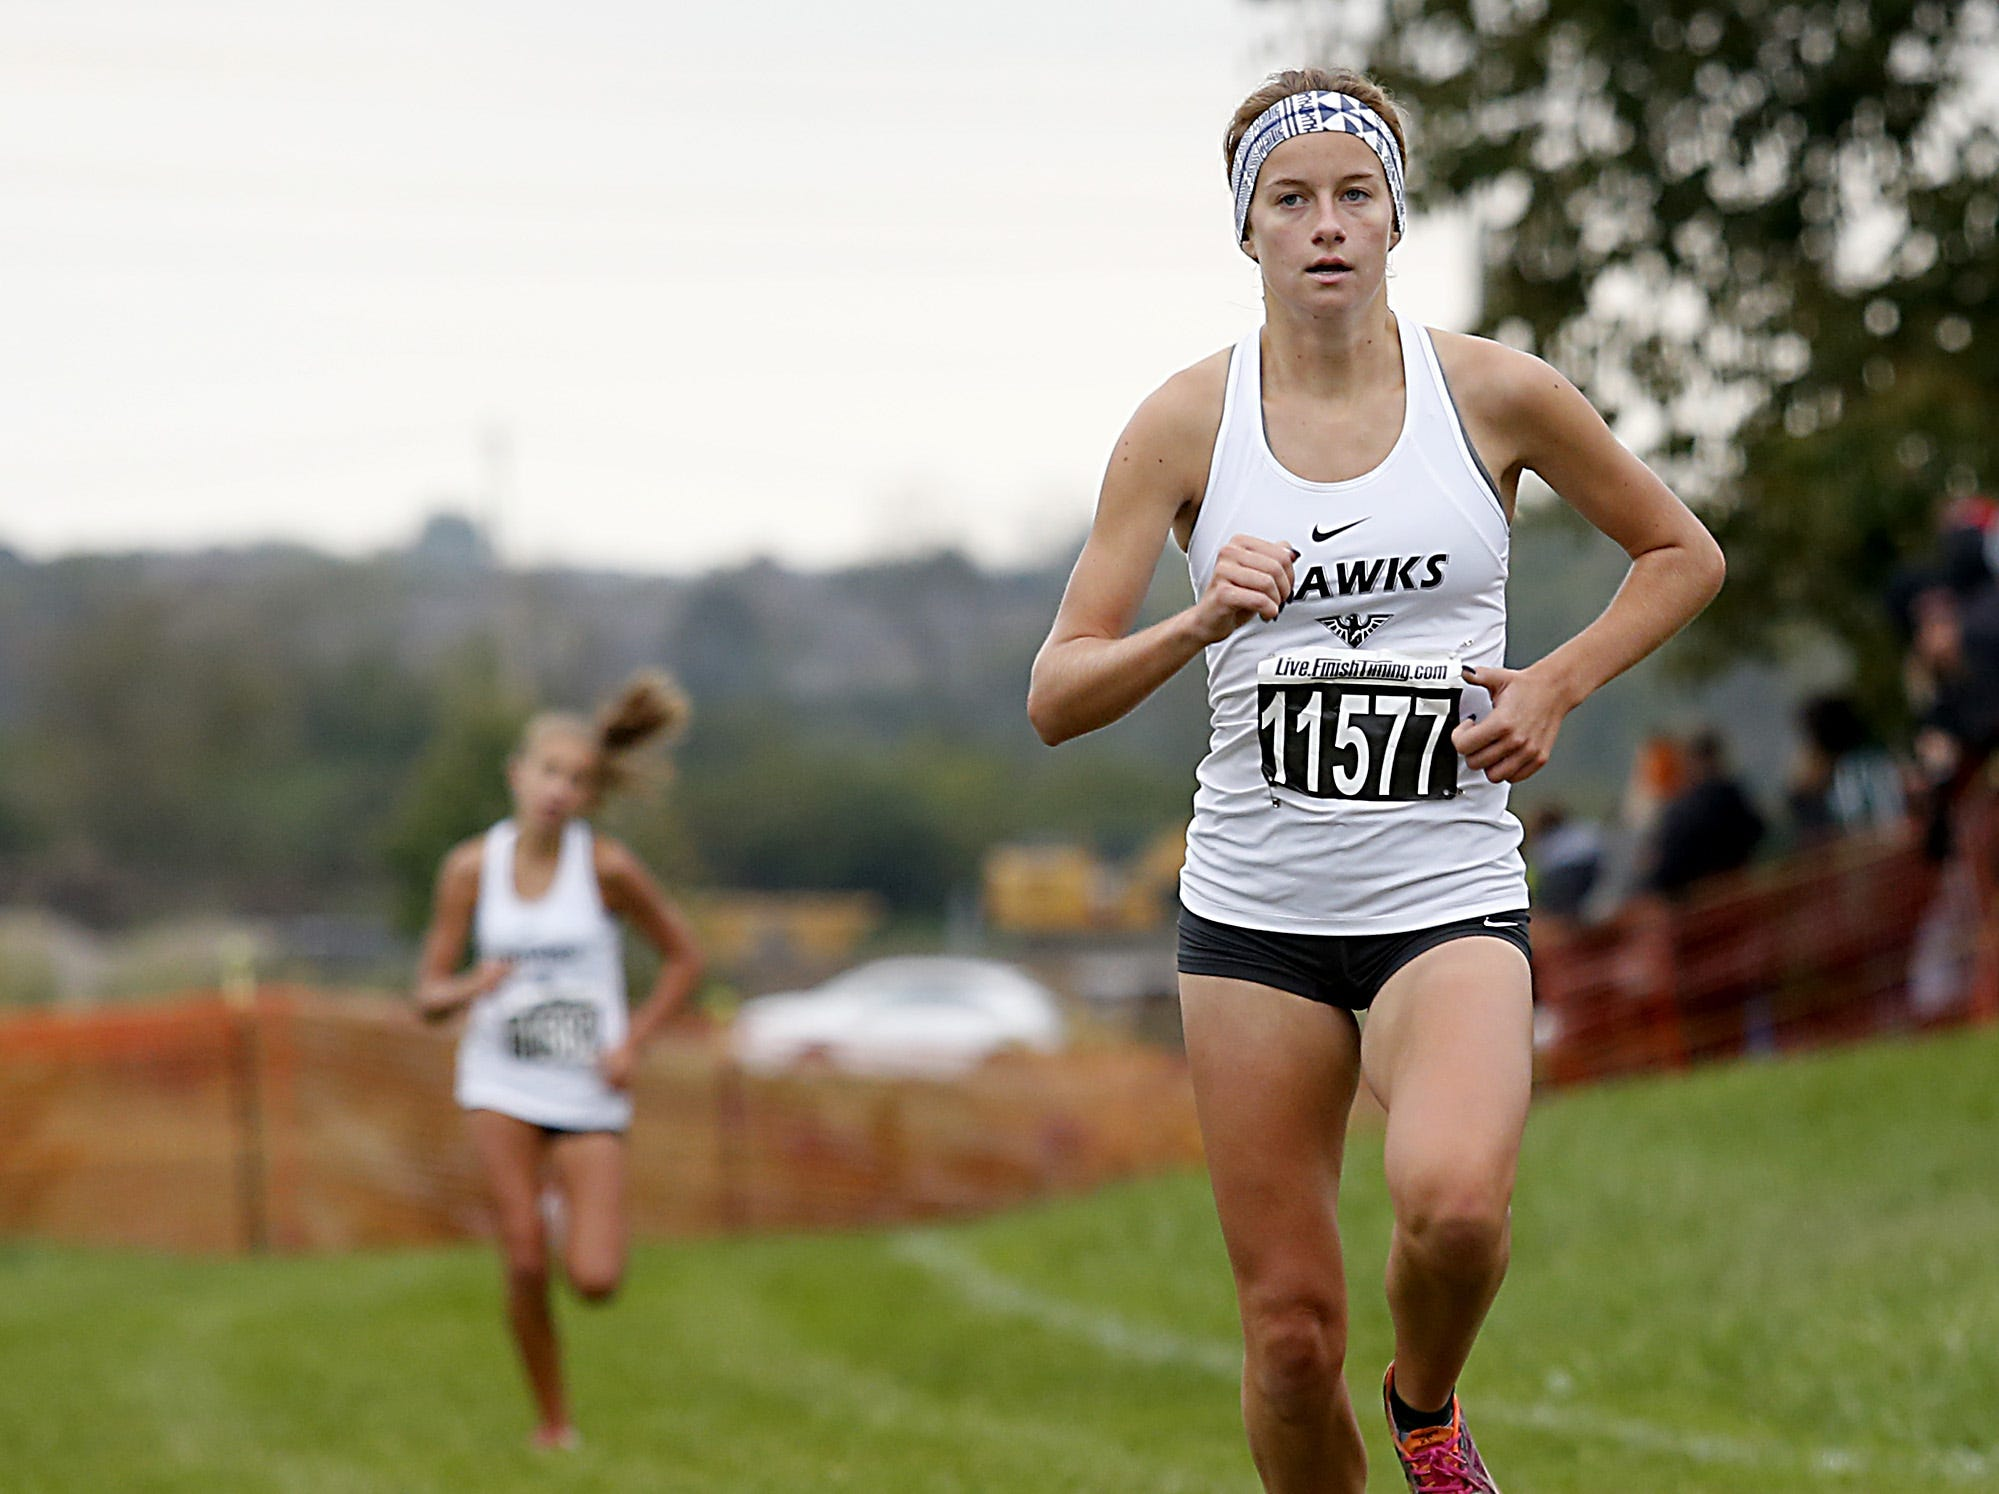 Ali Neumeier of Lakota East places sixth during the Greater Miami Conference Girls and Boys Cross Country Championships at Voice of America Park in West Chester Saturday, Oct. 13, 2018.